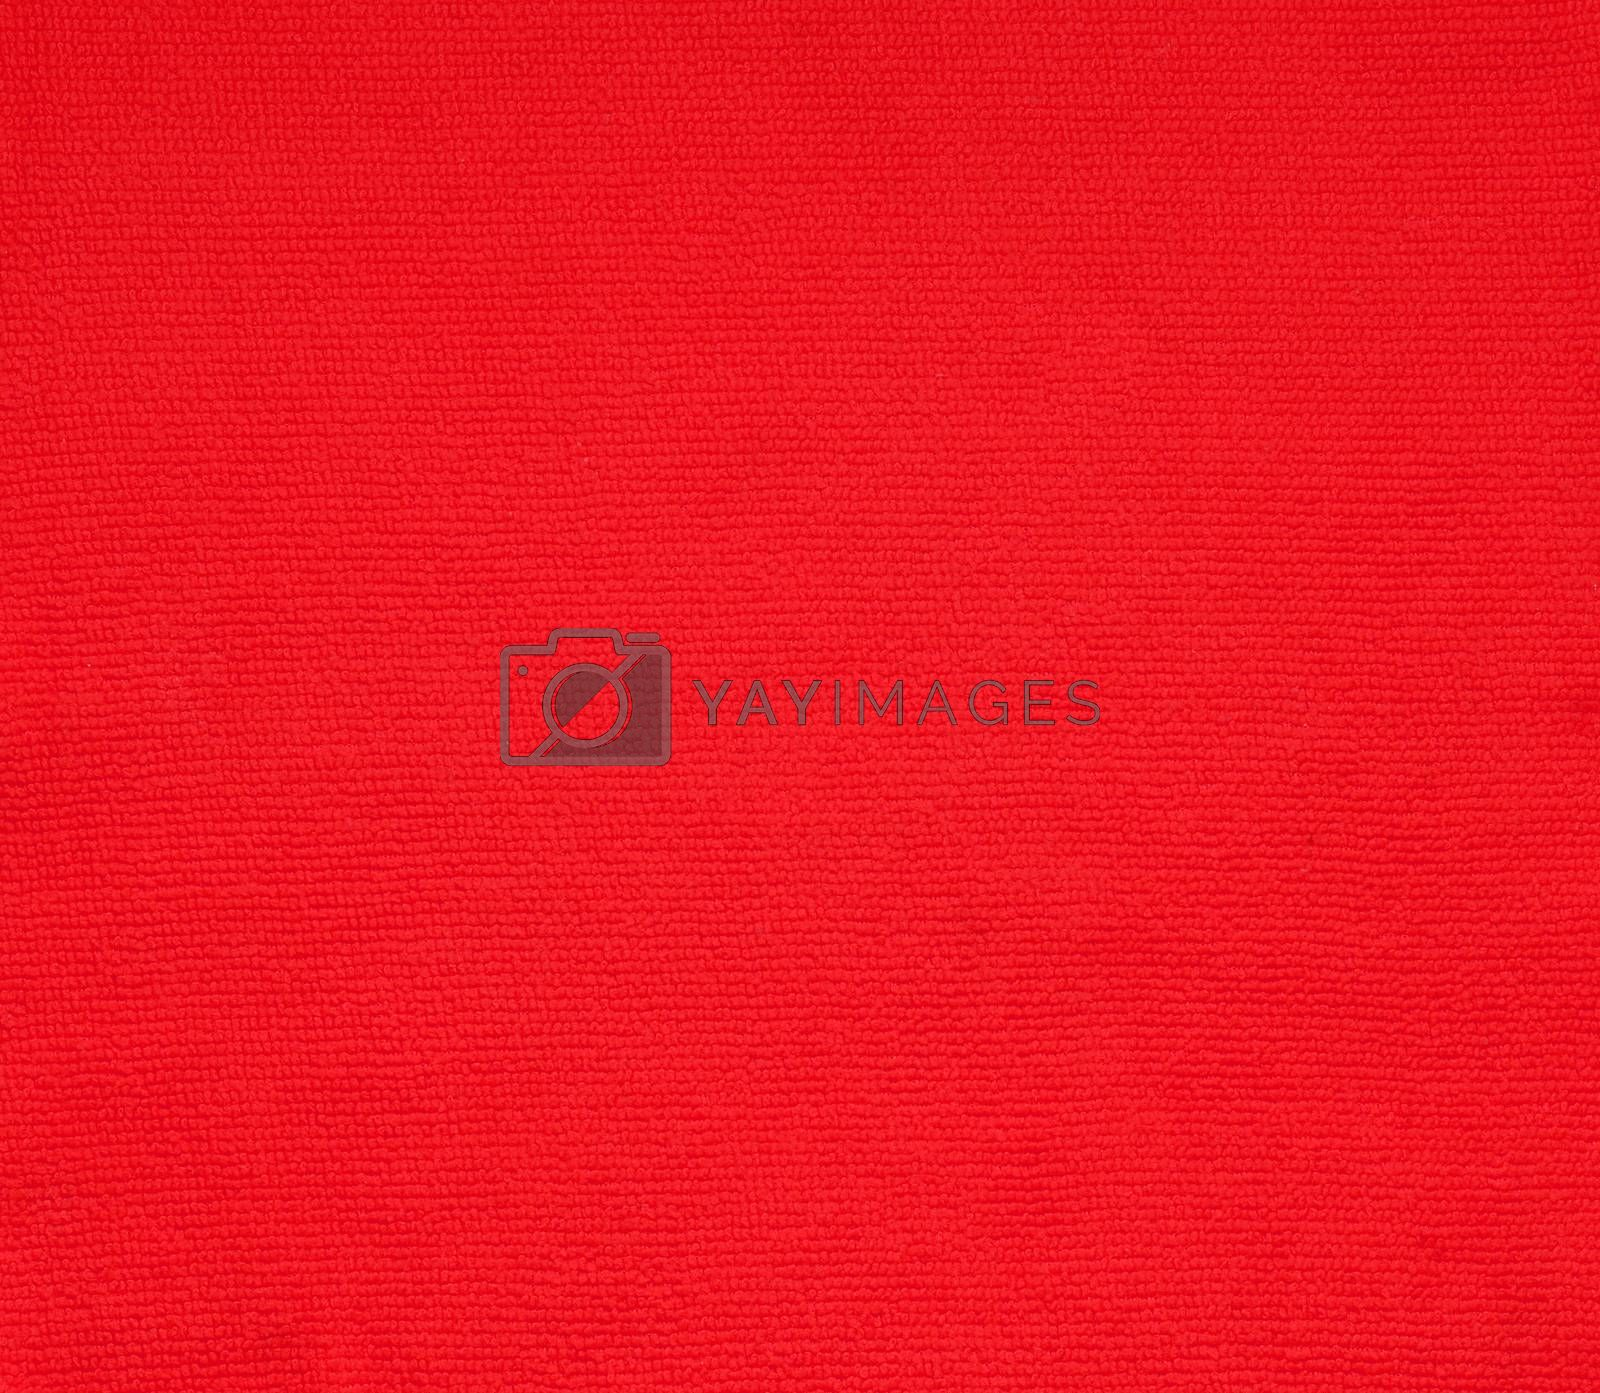 surface red fabric texture for background